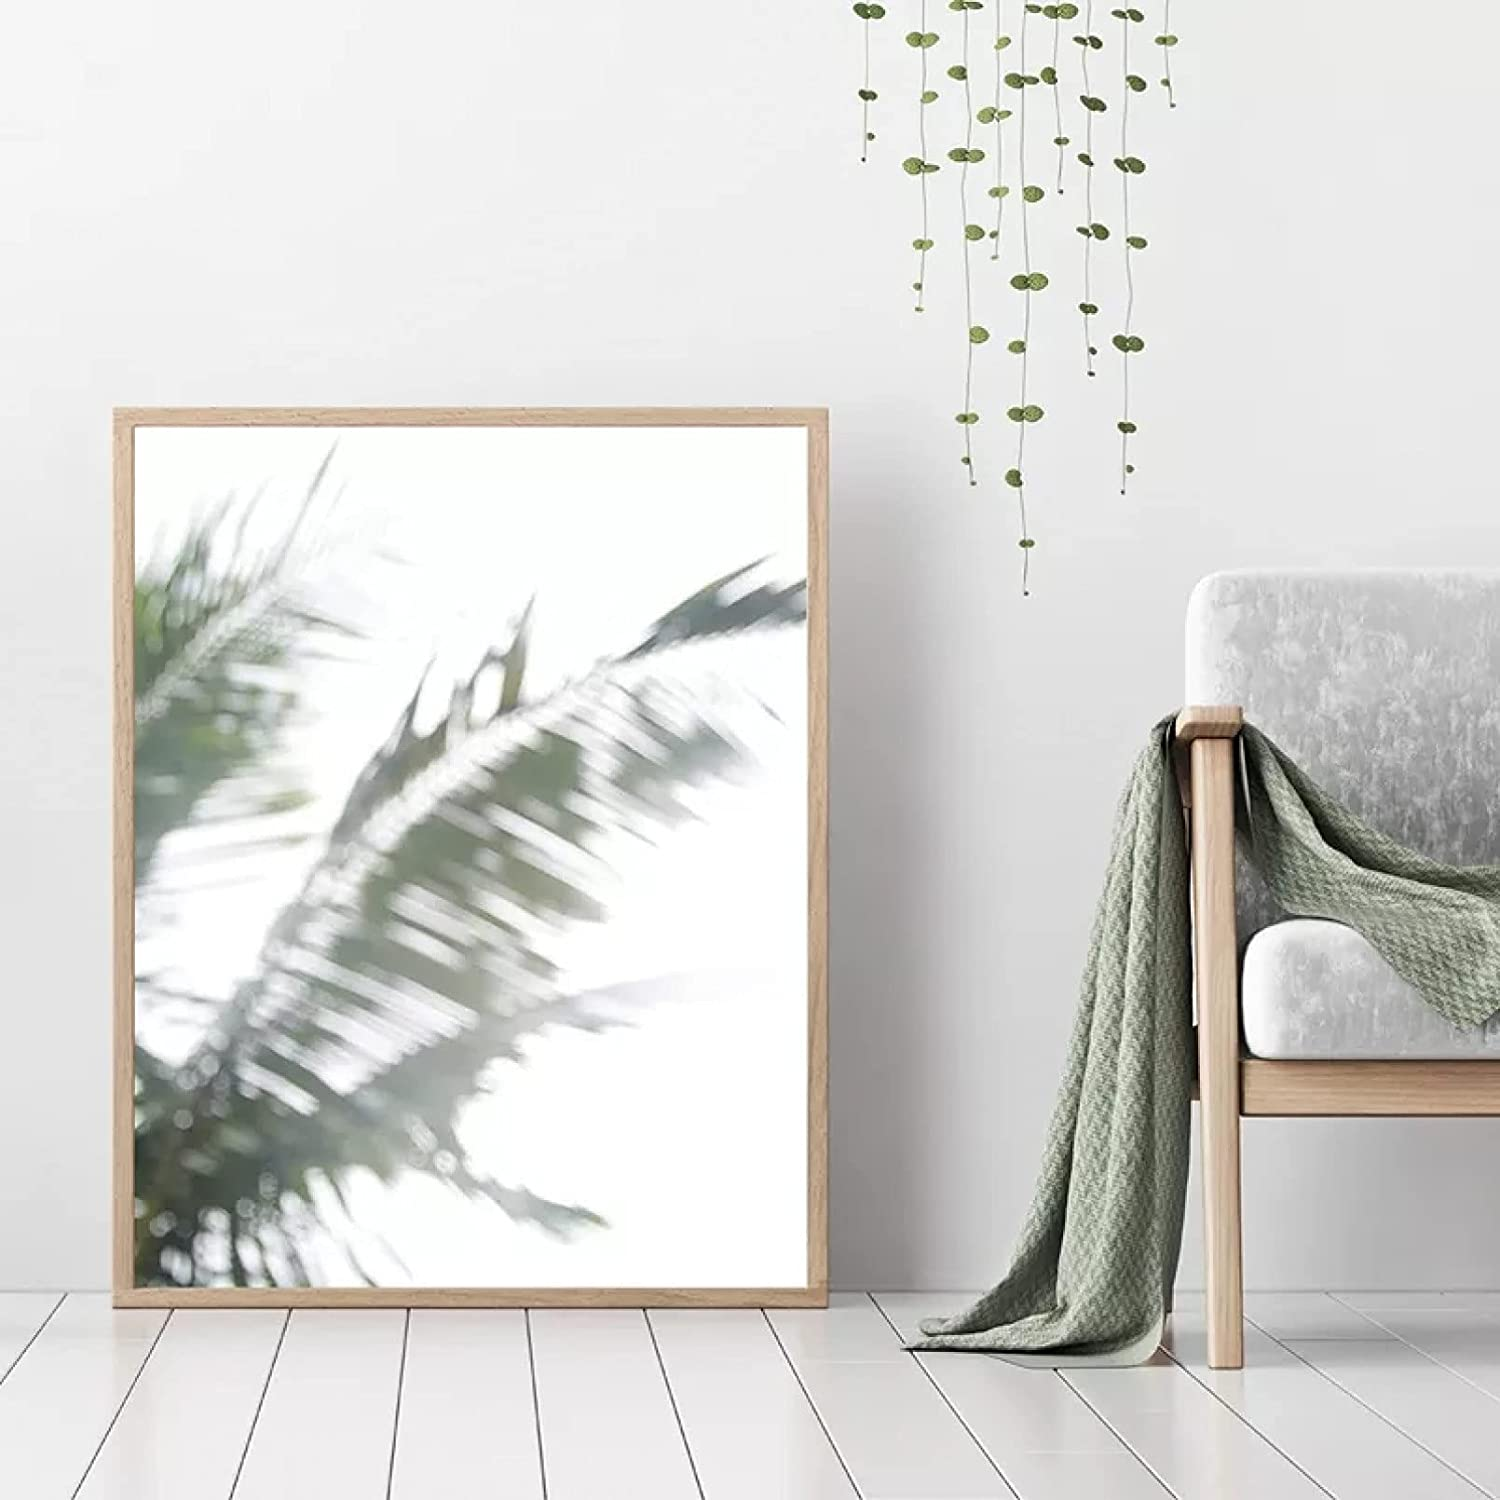 Home Decoration Chicago Mall Painting All items free shipping Printed Artwork Plants Abstract Poster